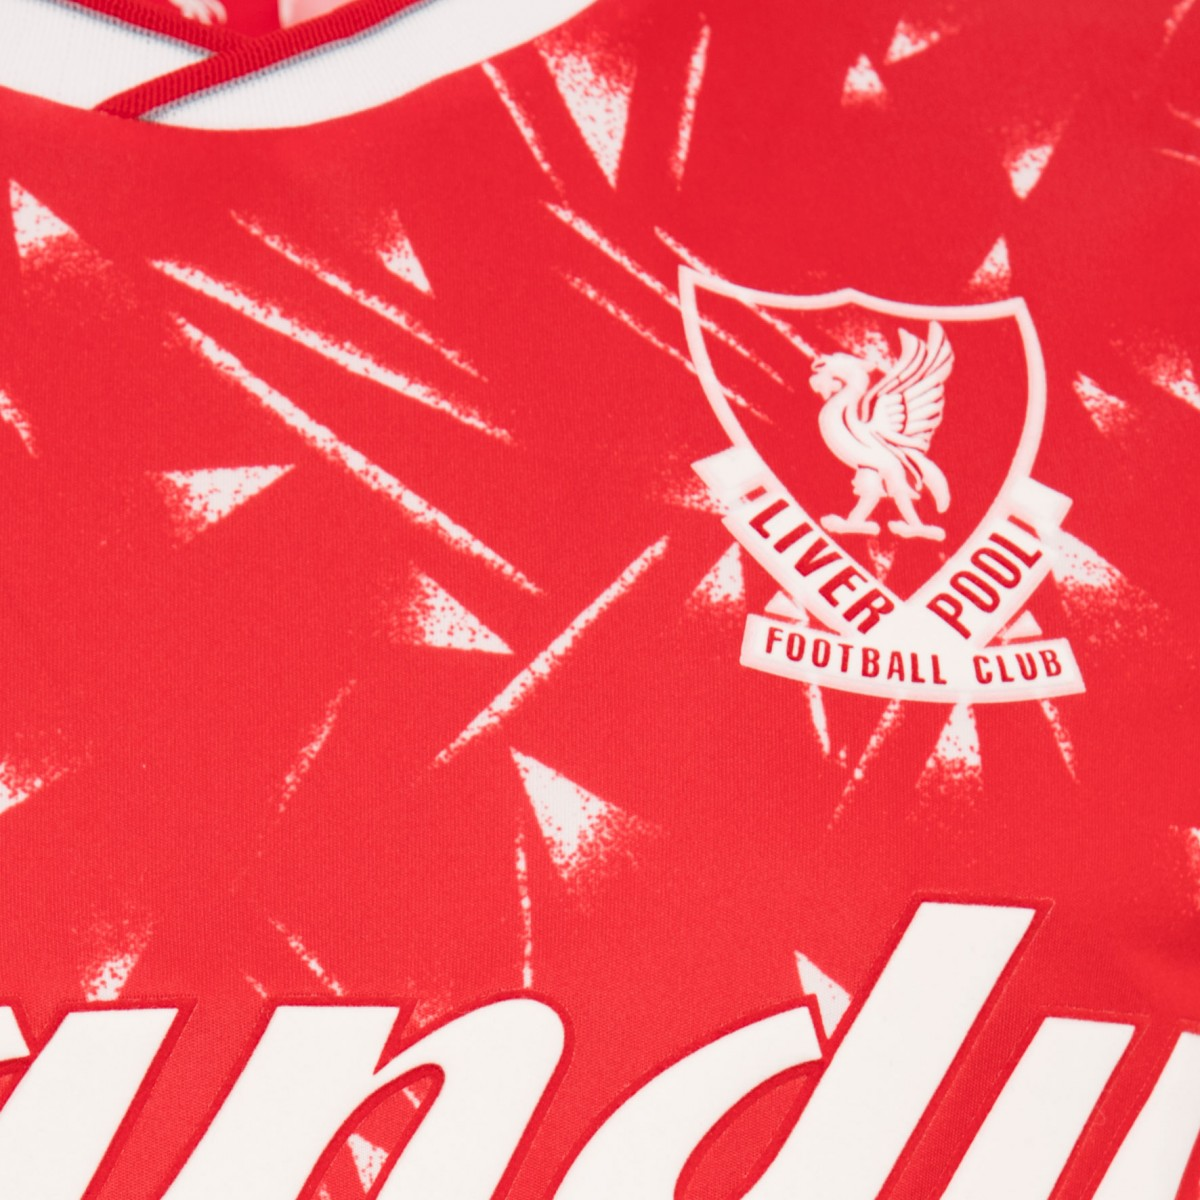 ... Click to enlarge image liverpool 1989 91 lfc home retro shirt c.jpg 7f9cca742